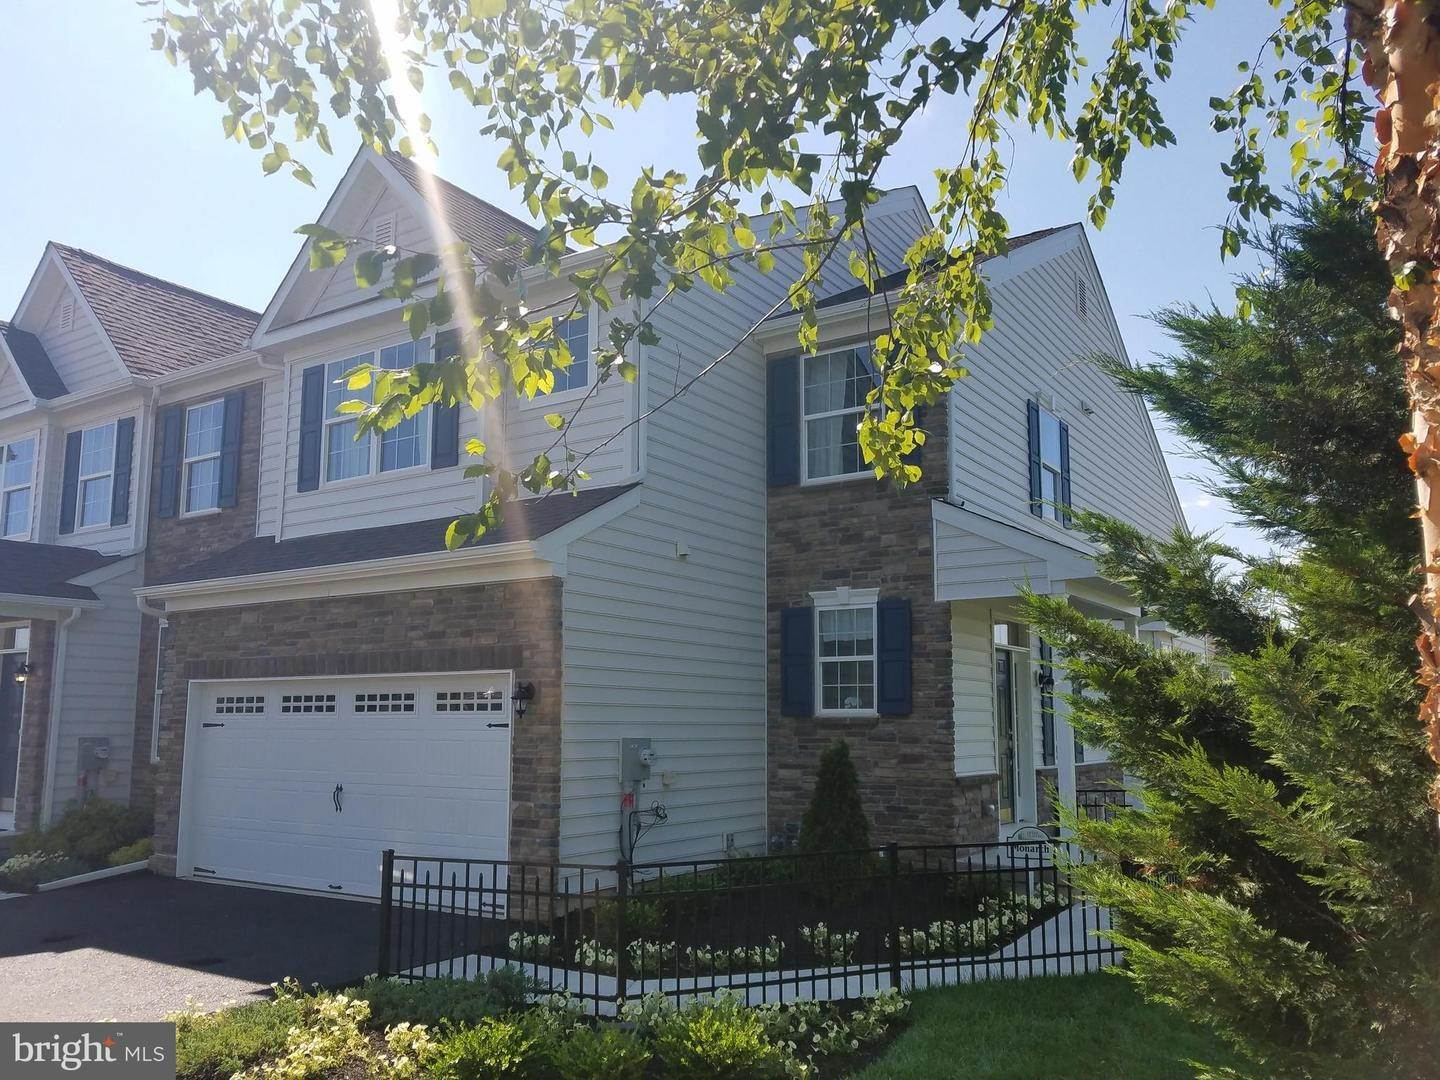 townhouses for Sale at 4546 WOODBRUSH WAY #312 Allentown, Pennsylvania 18104 United States